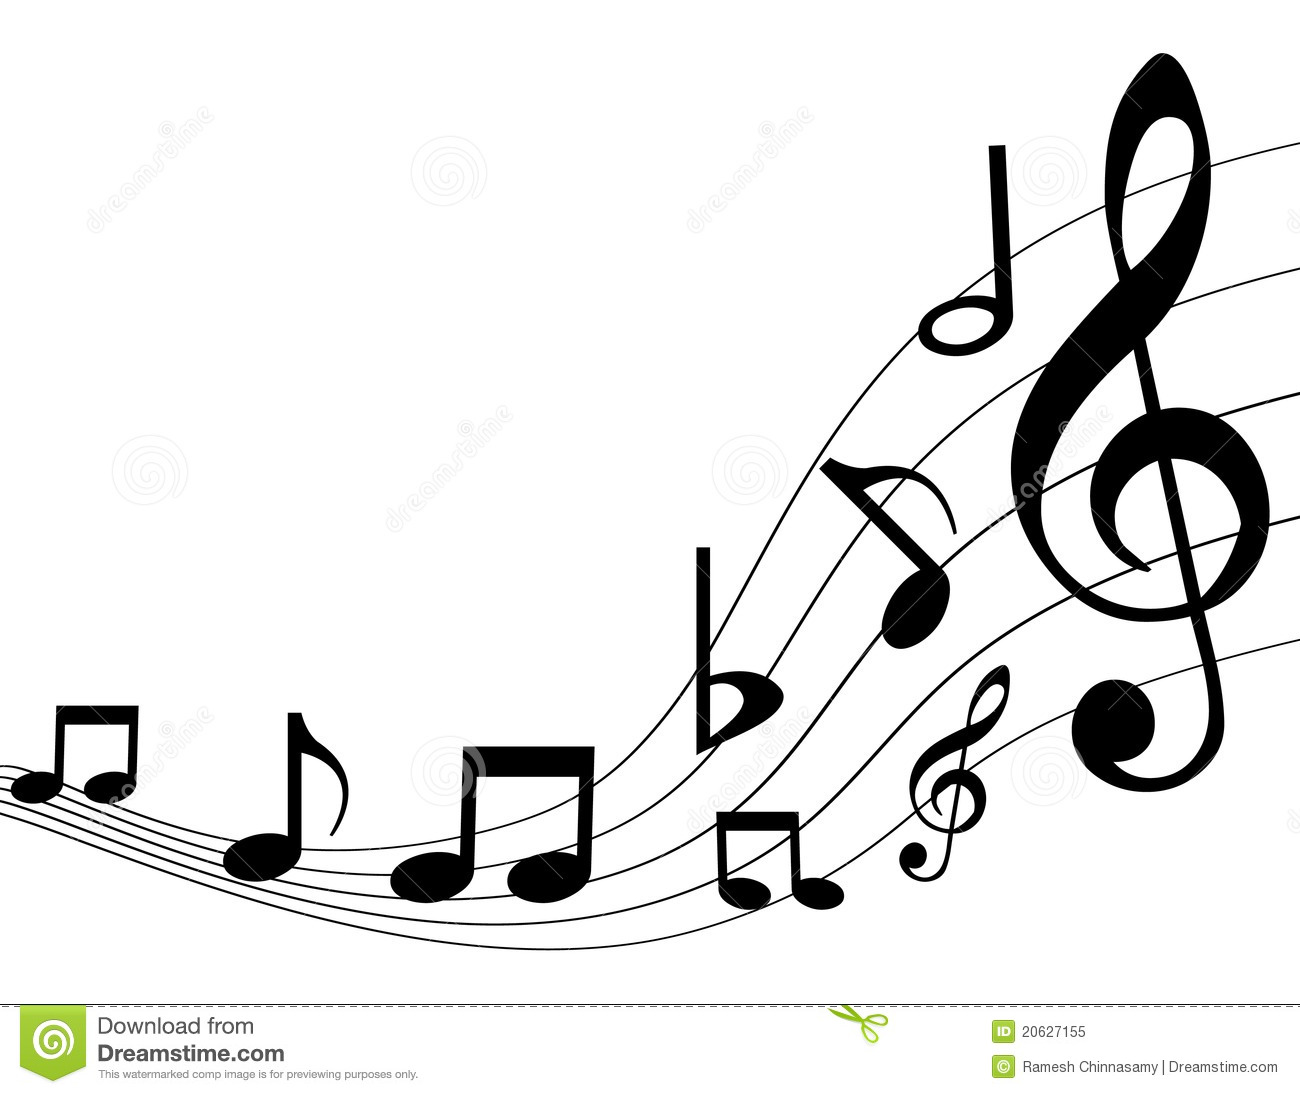 Clipart music notes music notes background clipart and free music - Music 20notes 20clip 20art 20transparent